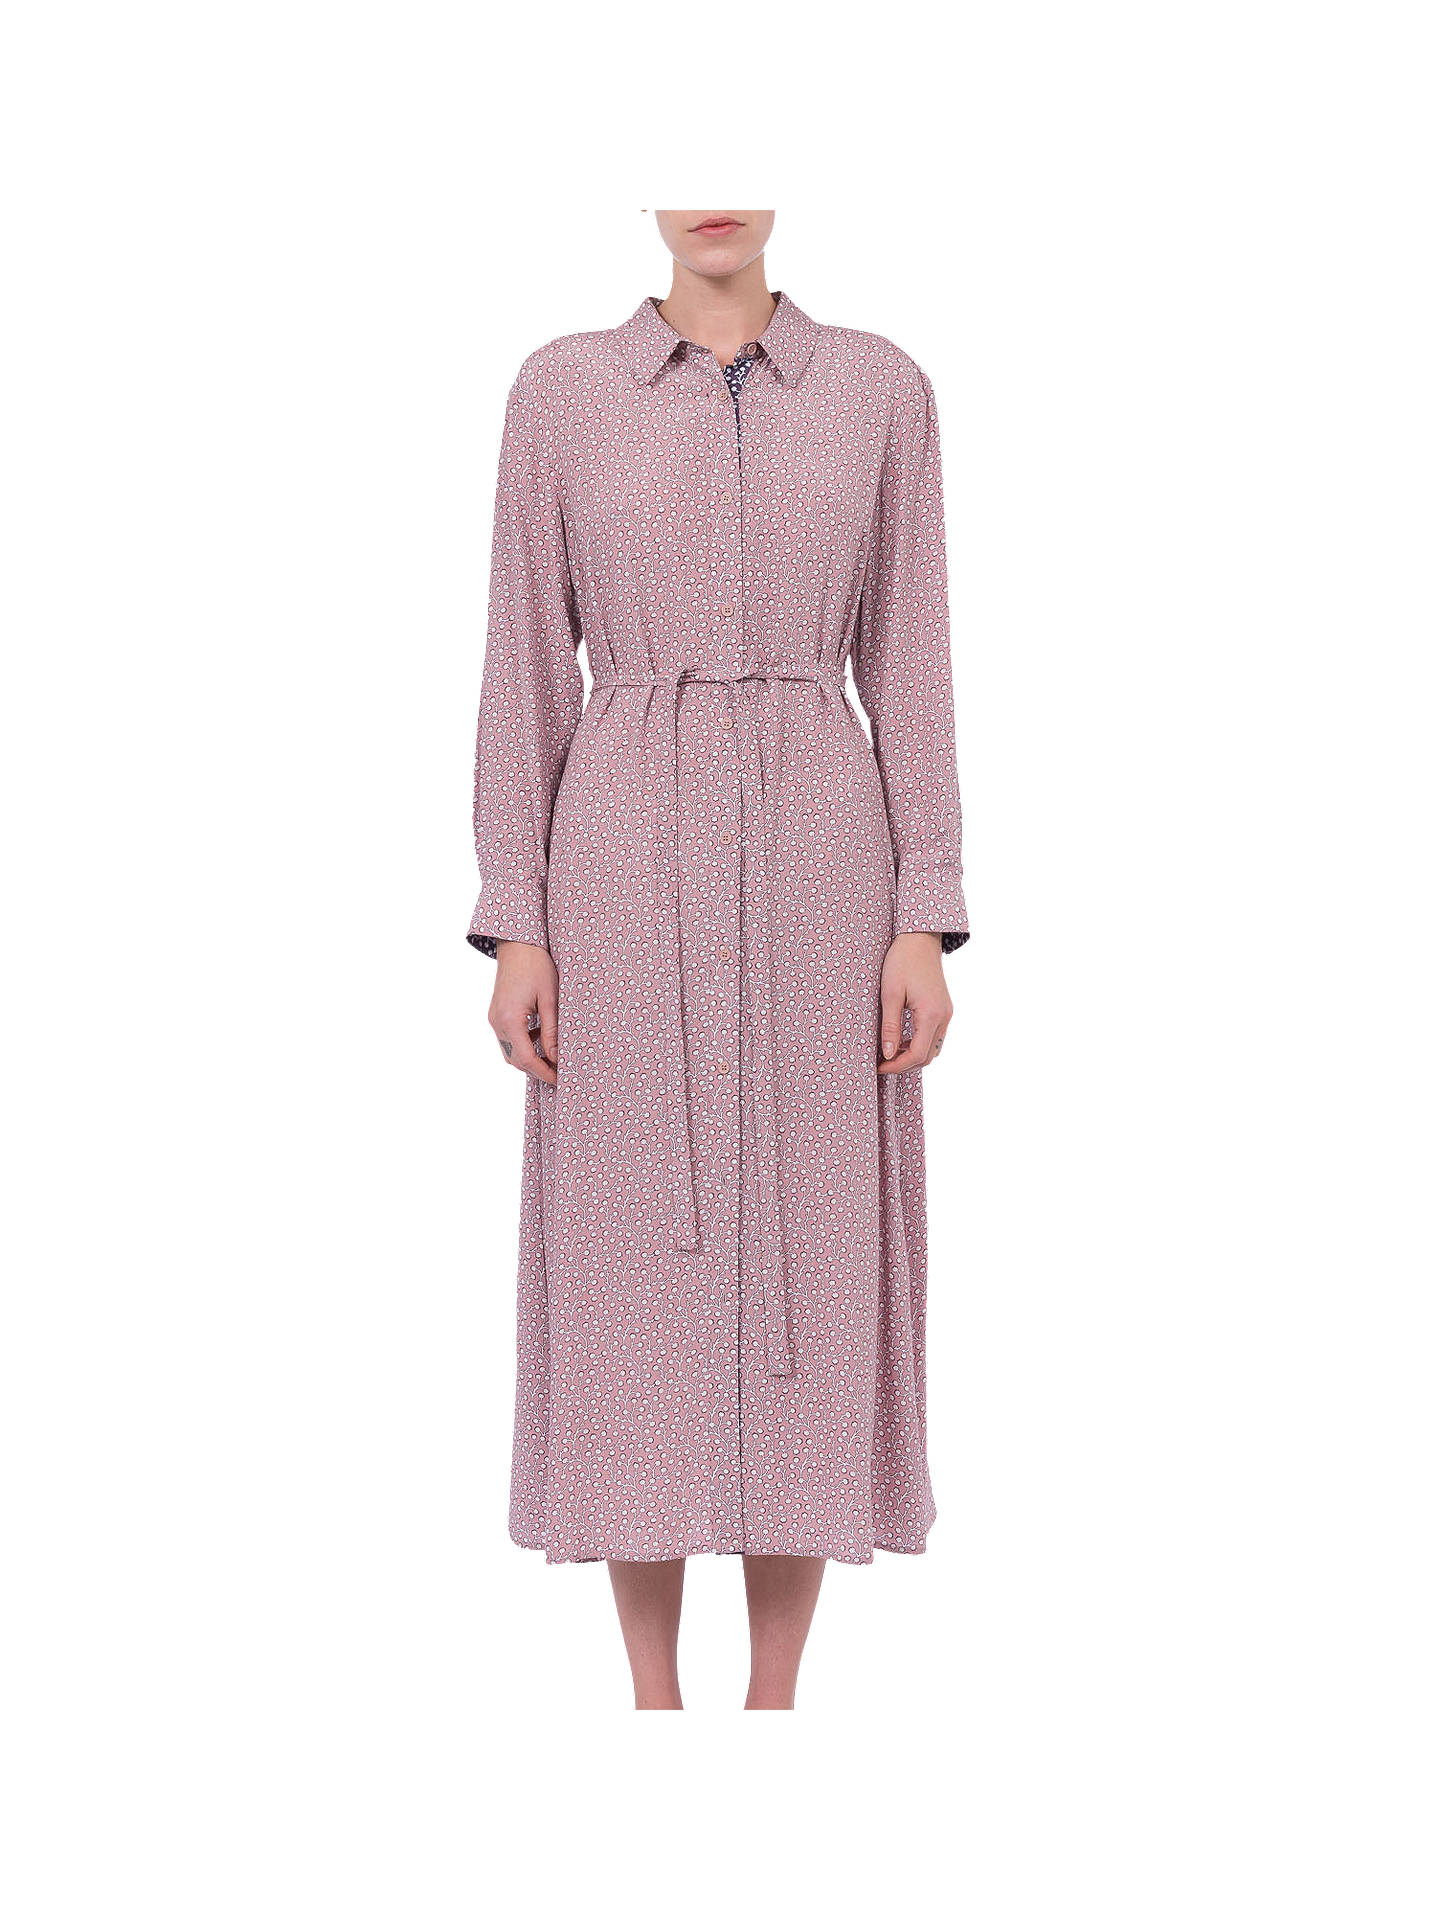 fea51fdf47 Buy French Connection Elao Drape Shirt Dress, Teagown, 6 Online at  johnlewis.com ...